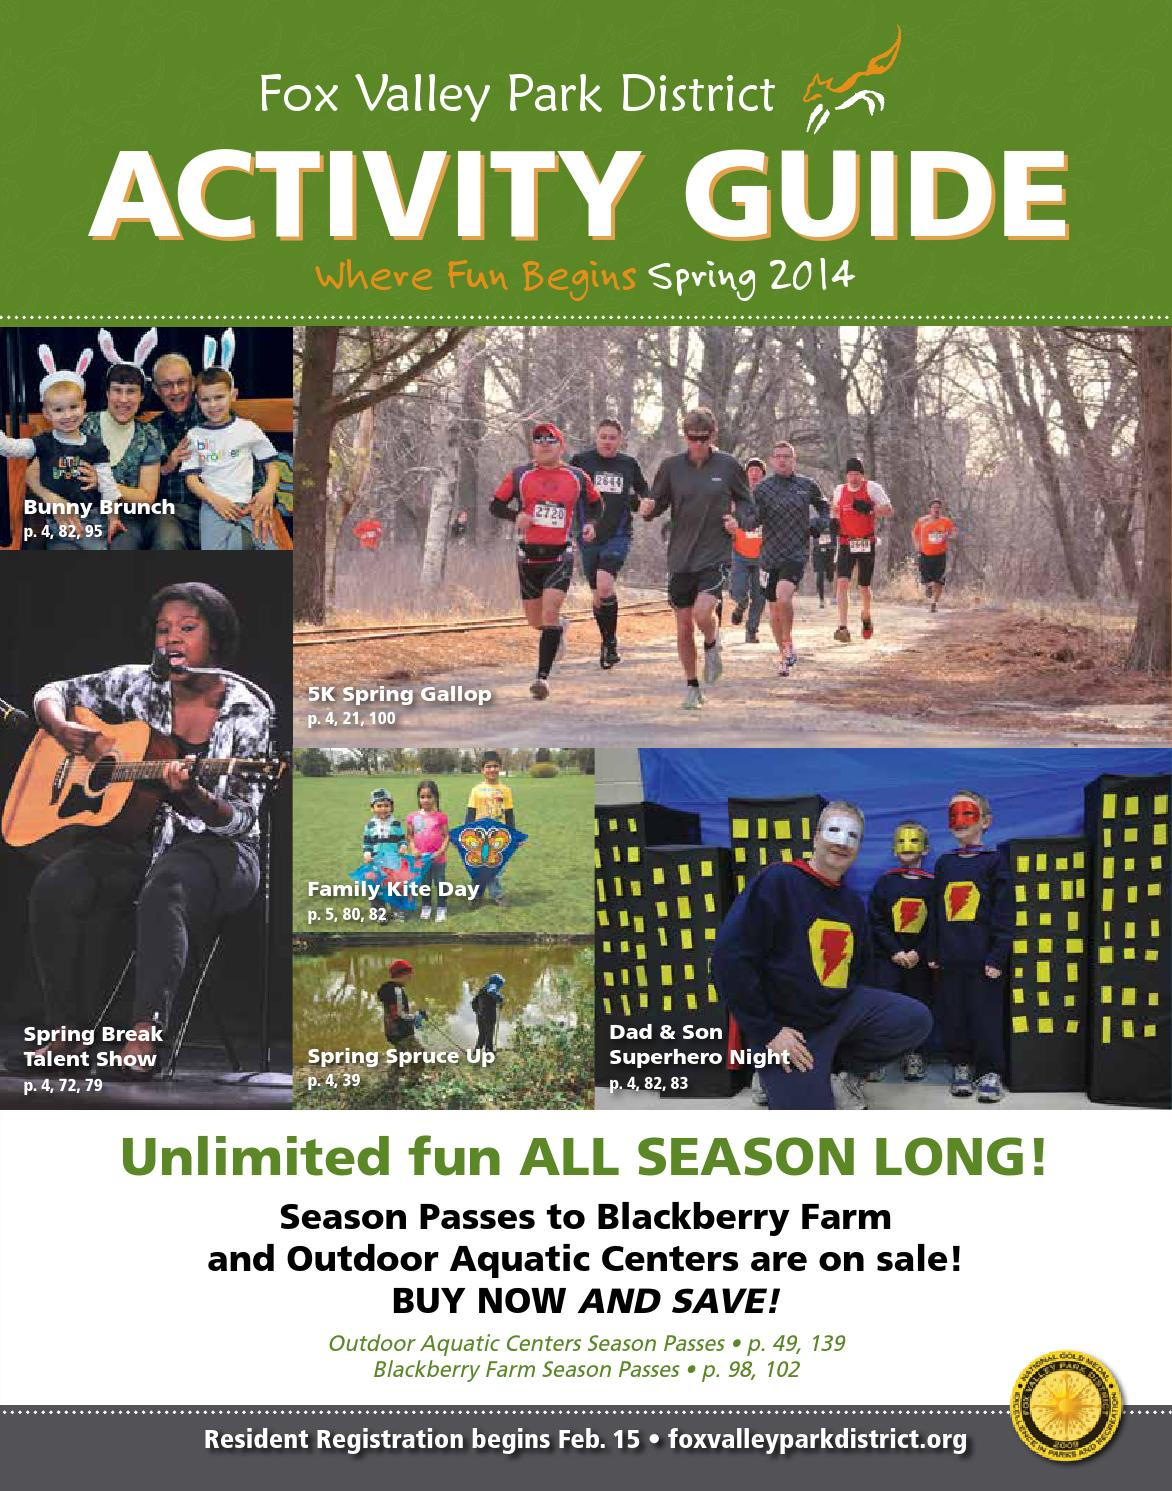 Fox Valley Park District Spring Activity Guide 2014 by Dan